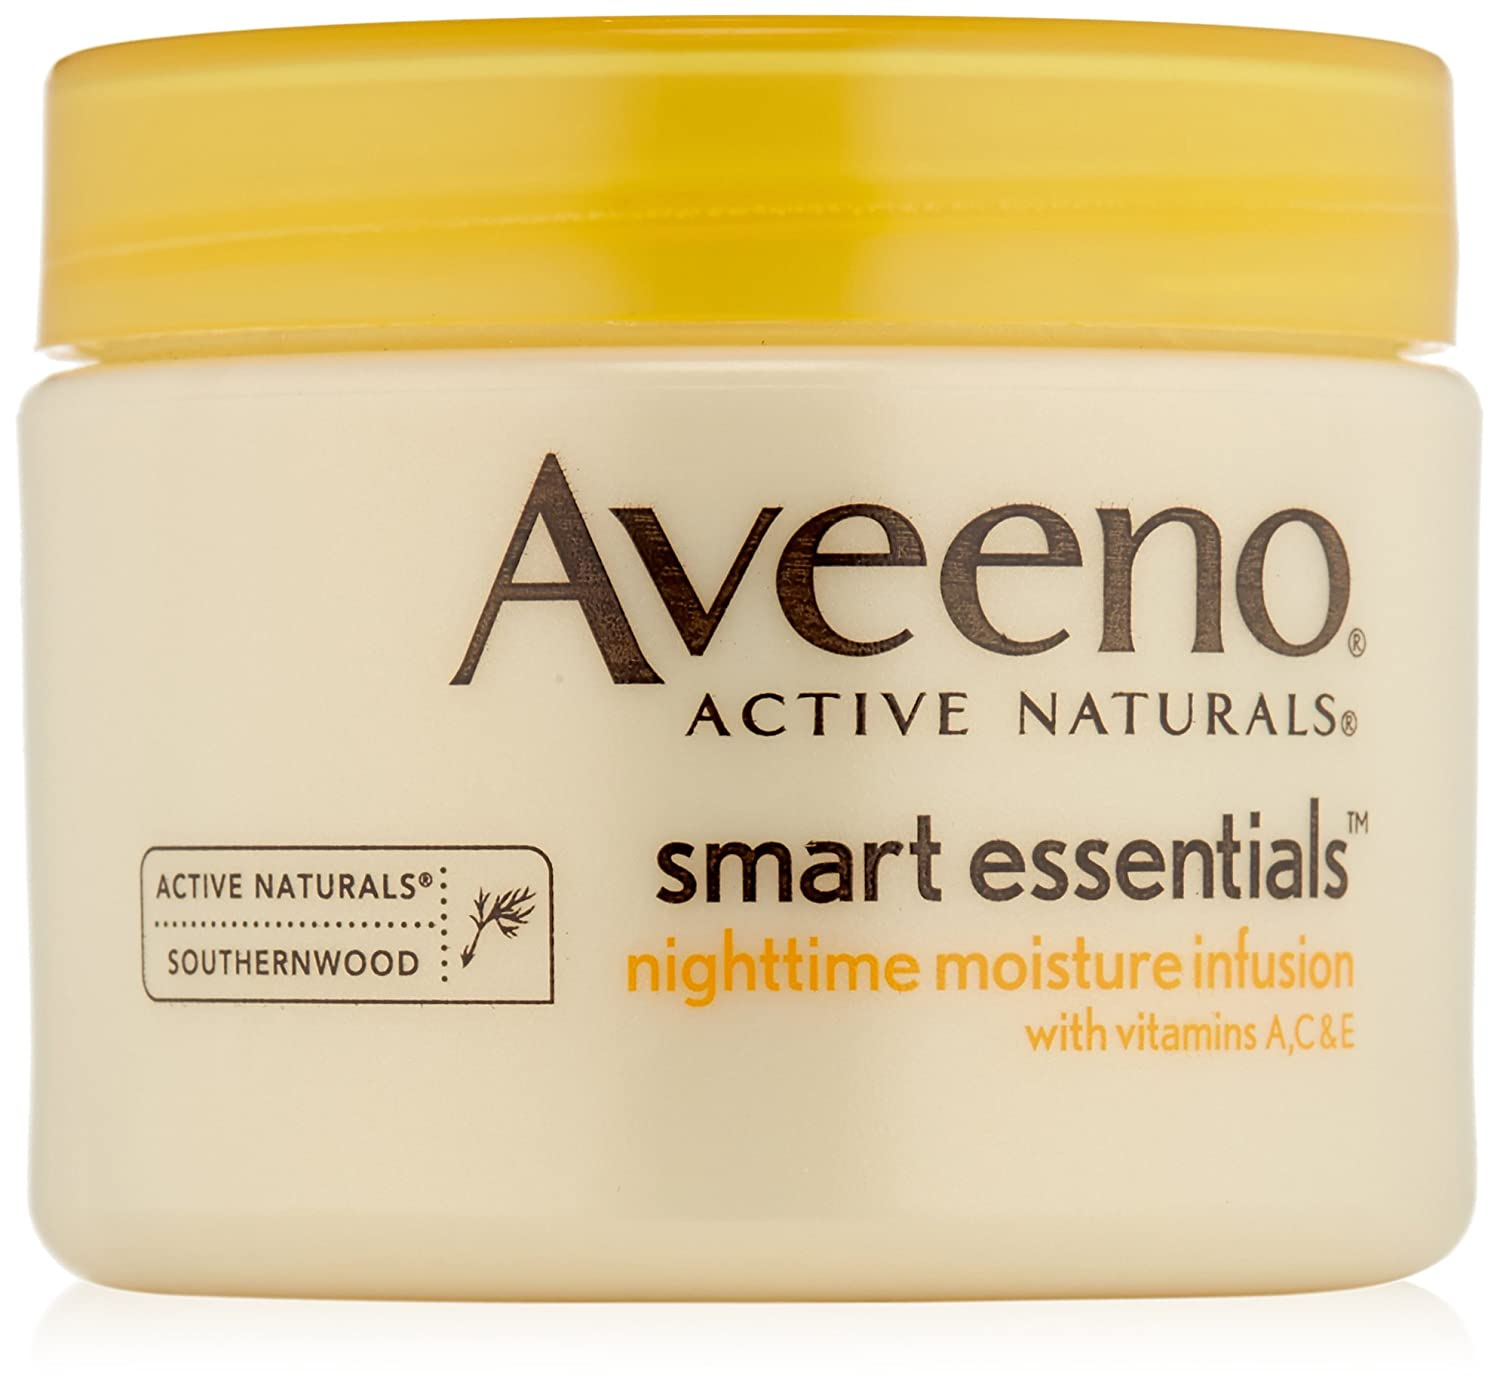 Aveeno Smart Essentials Nighttime Moisture Infusion 50 ml Thailand J&J523399